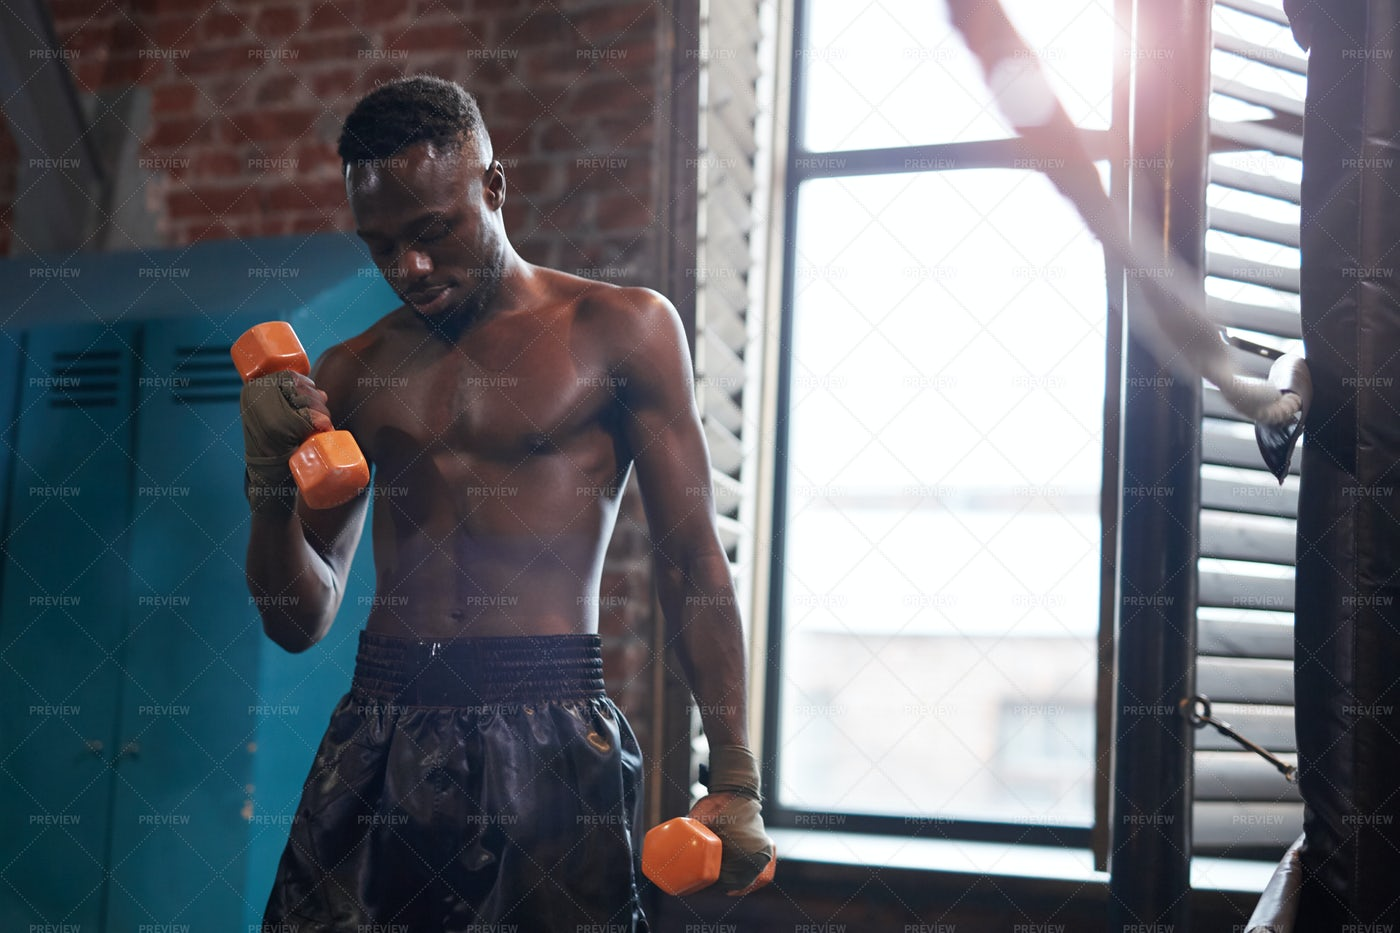 Boxer Training With Dumbbells: Stock Photos